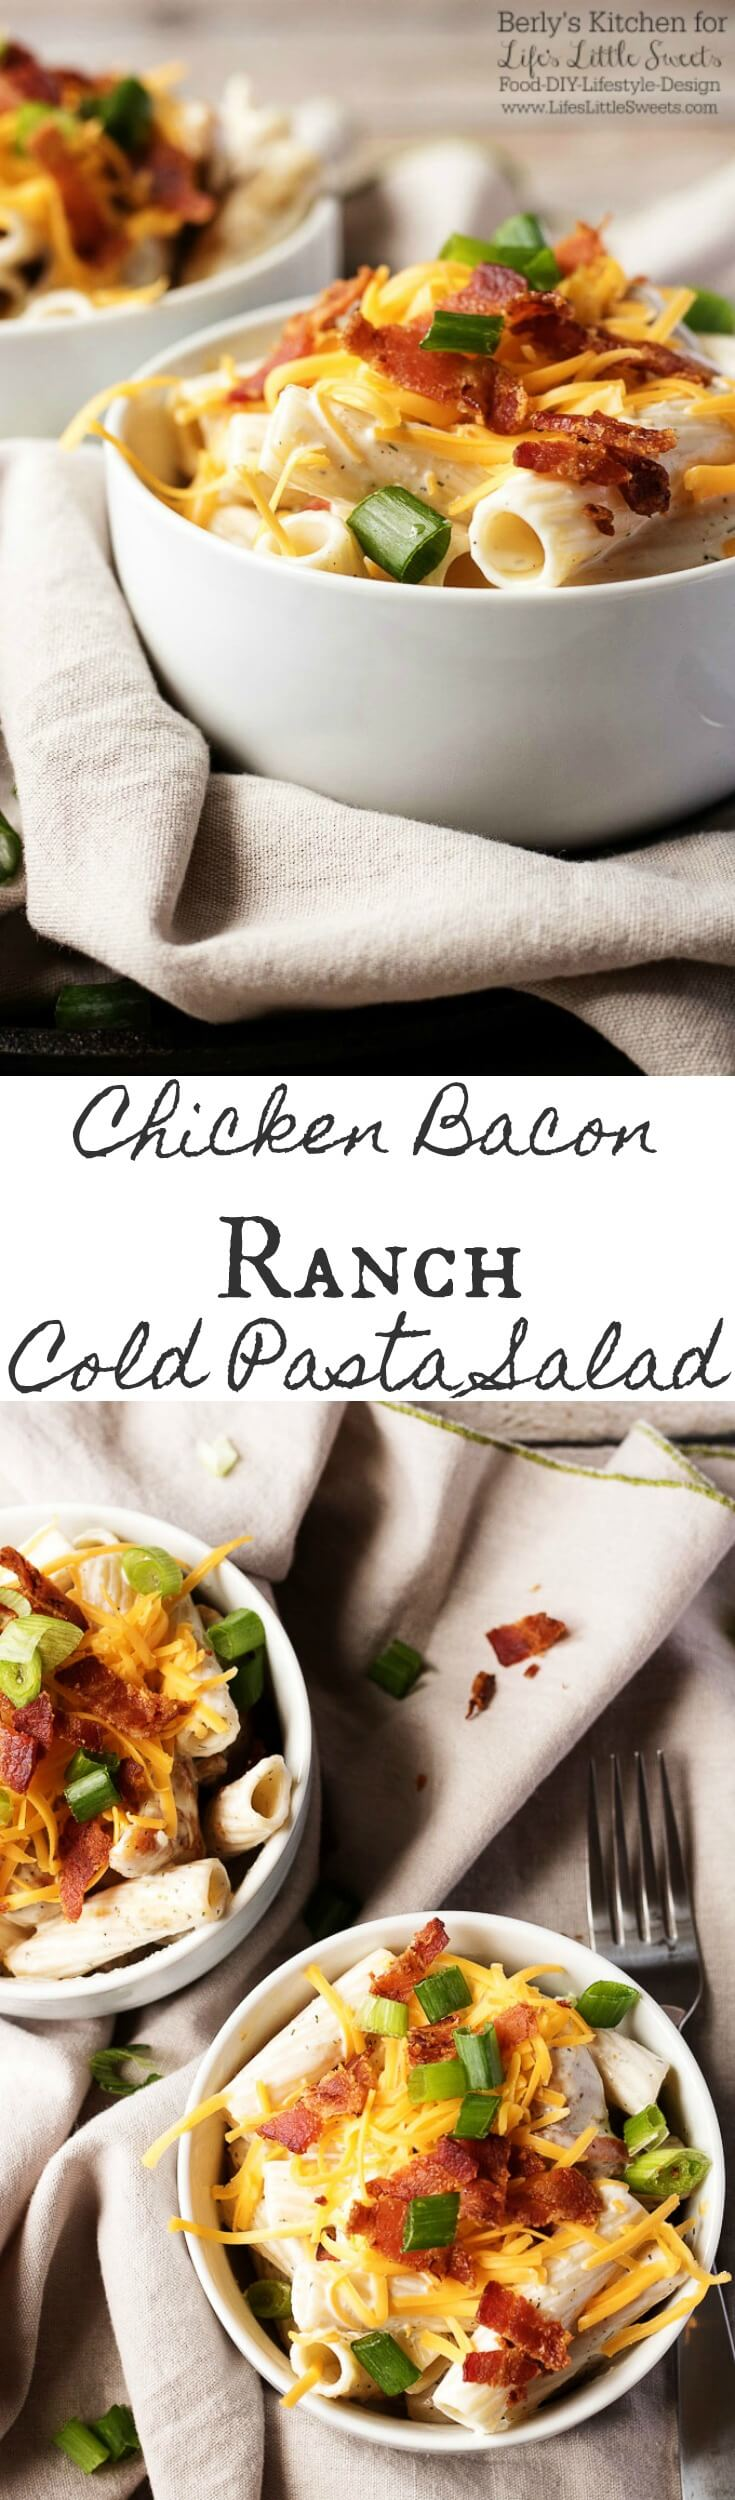 This chicken bacon ranch cold pasta salad is loaded with everything you love and is the perfect dish to satisfy your cravings for a savory meal in a bowl. (4 servings)